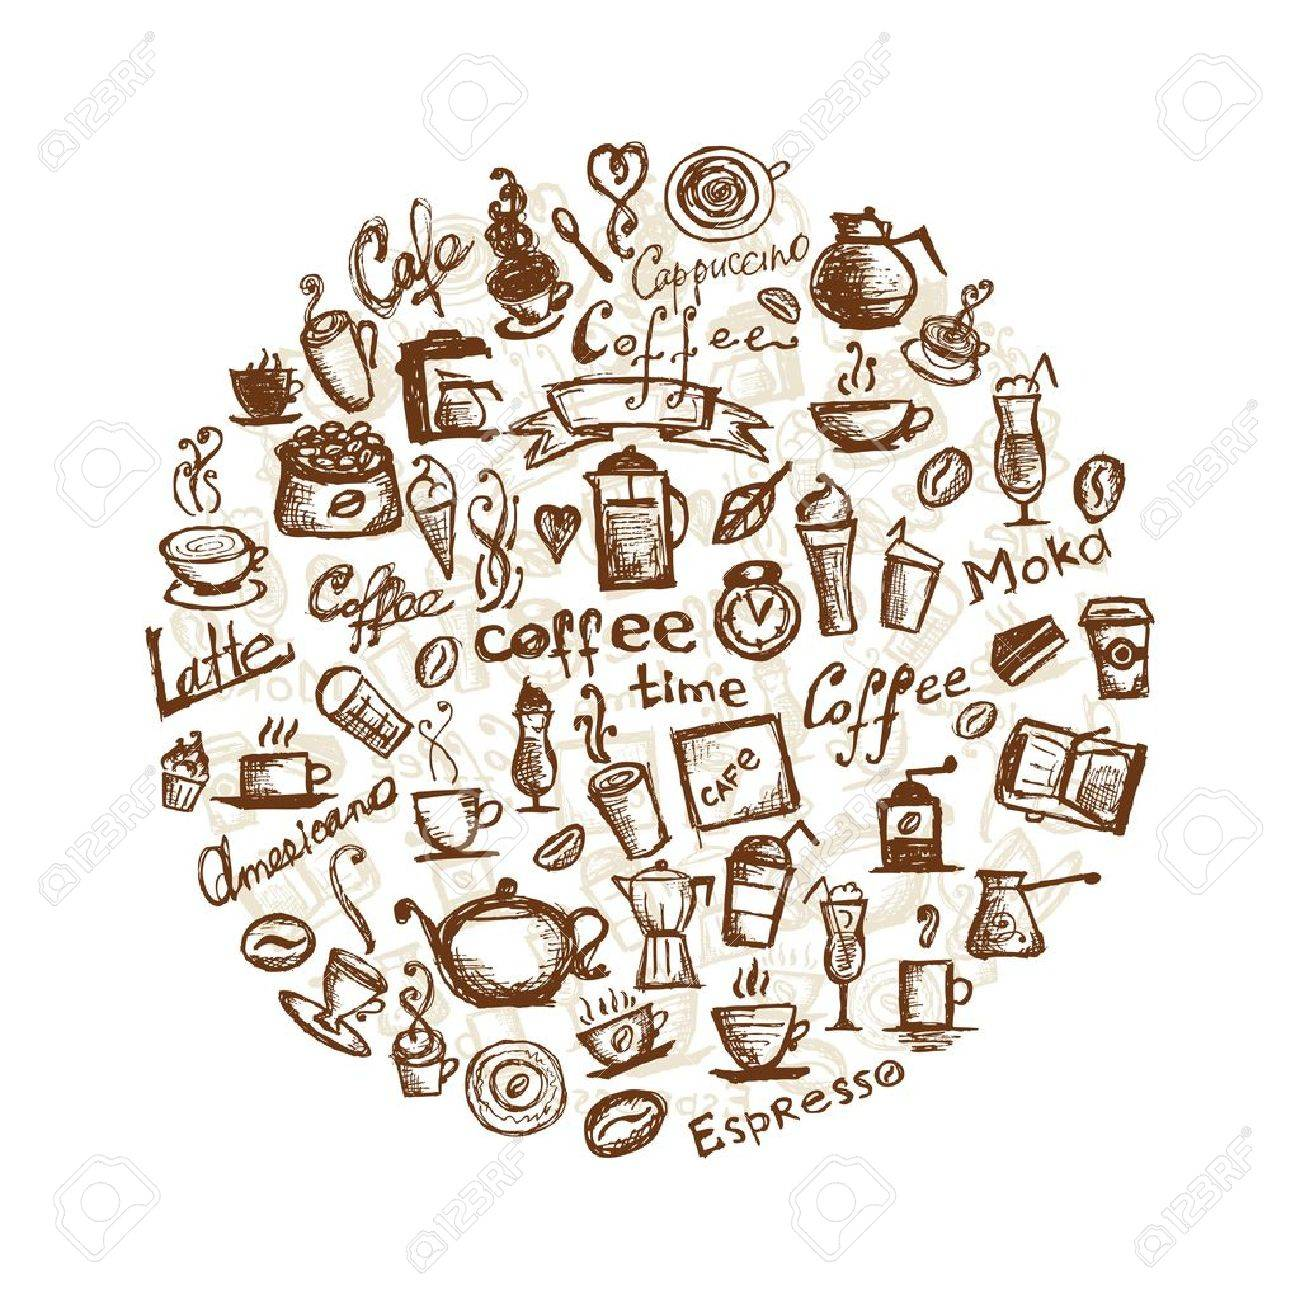 Coffee time, design elements Stock Vector - 10407421